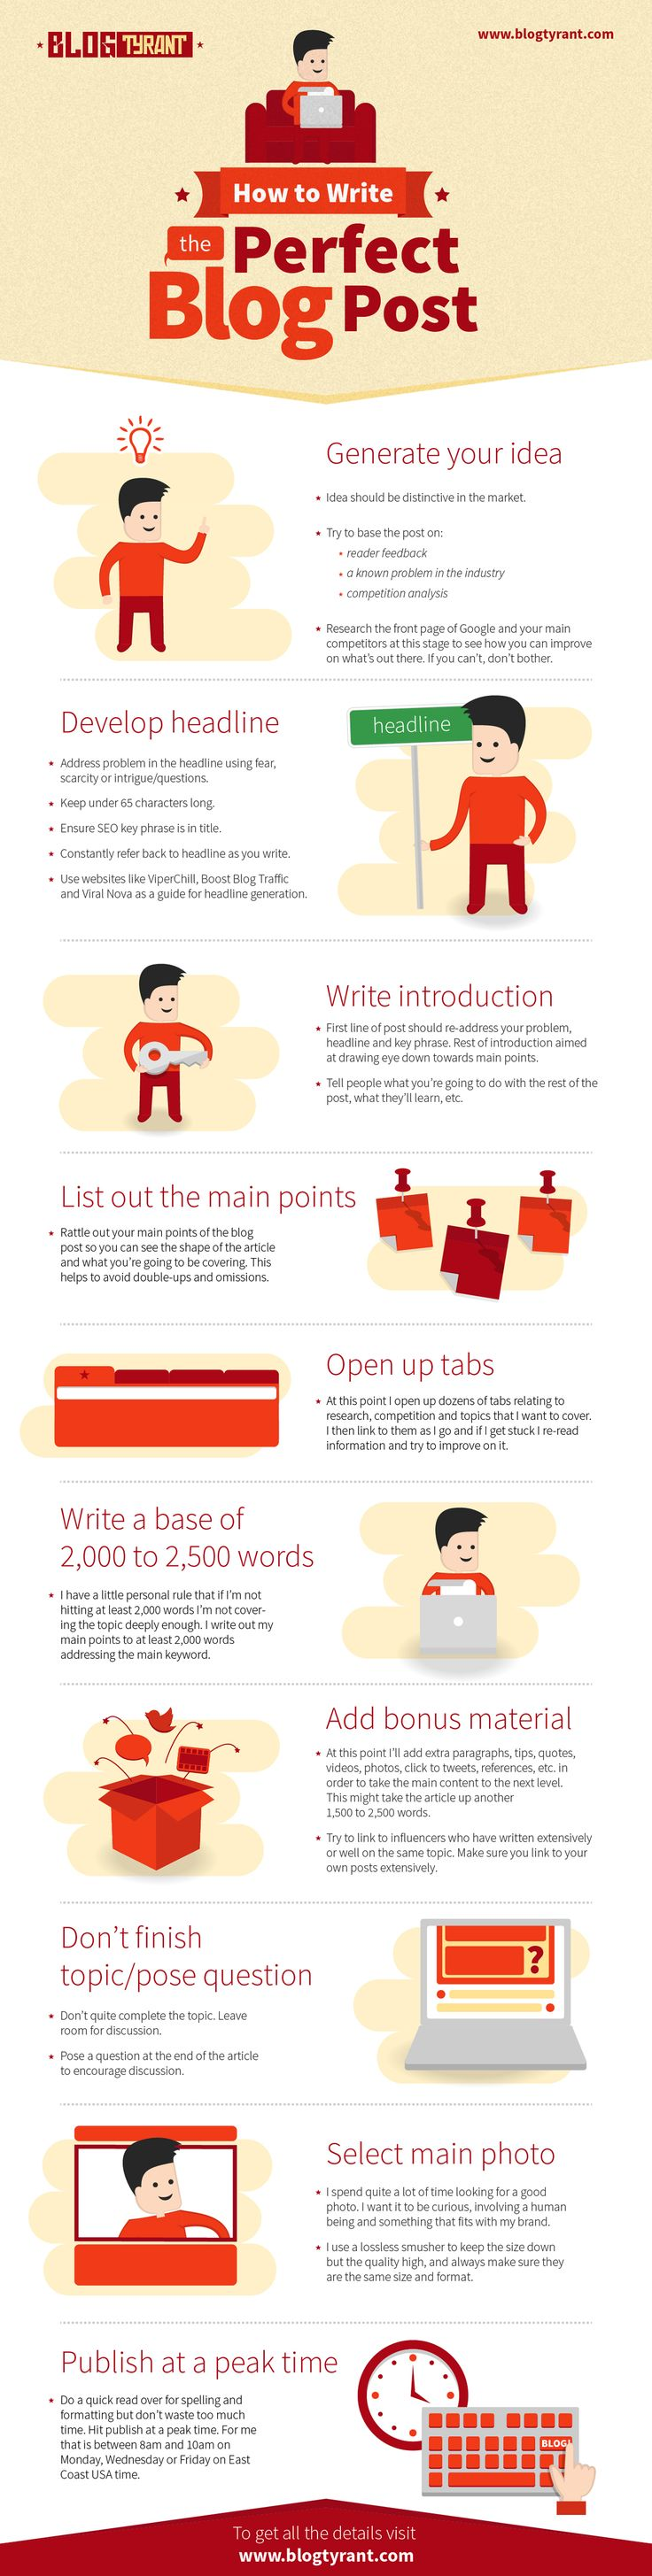 How to Write the Perfect Blog Post: A Complete Guide to Copy - infographic